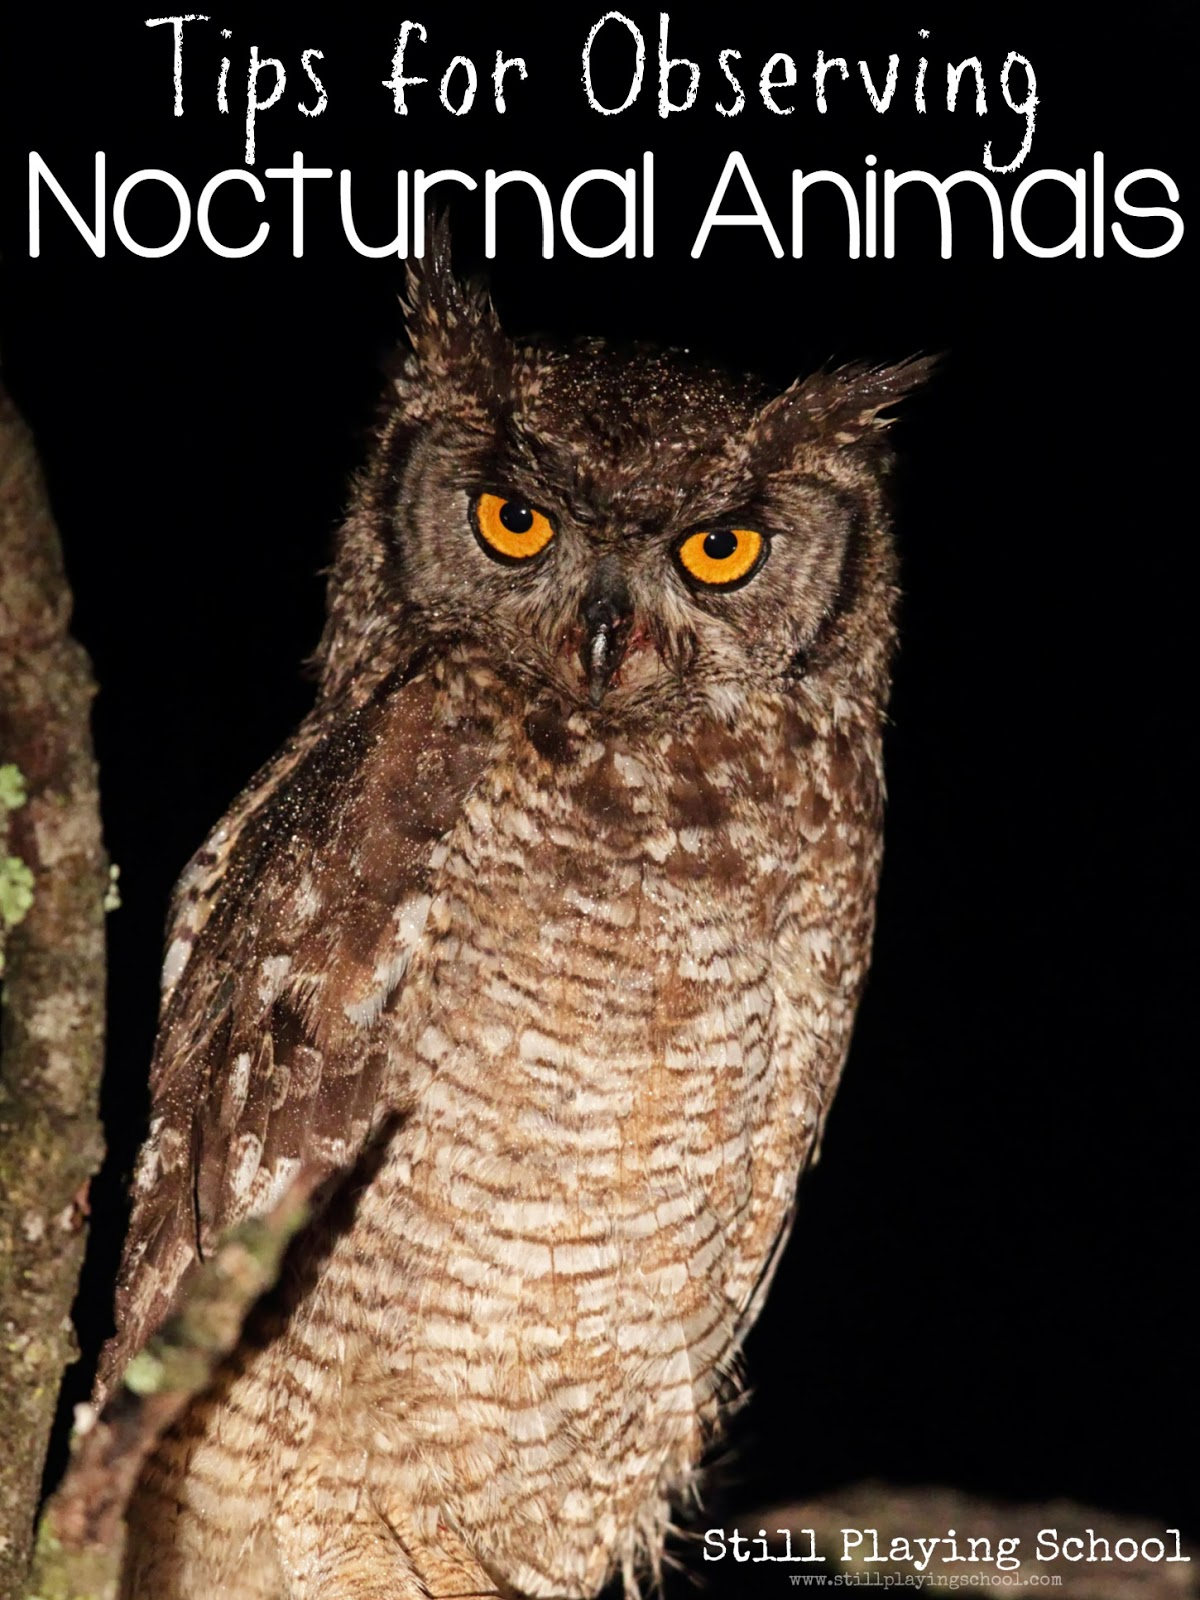 Tips For Observing Nocturnal Animals